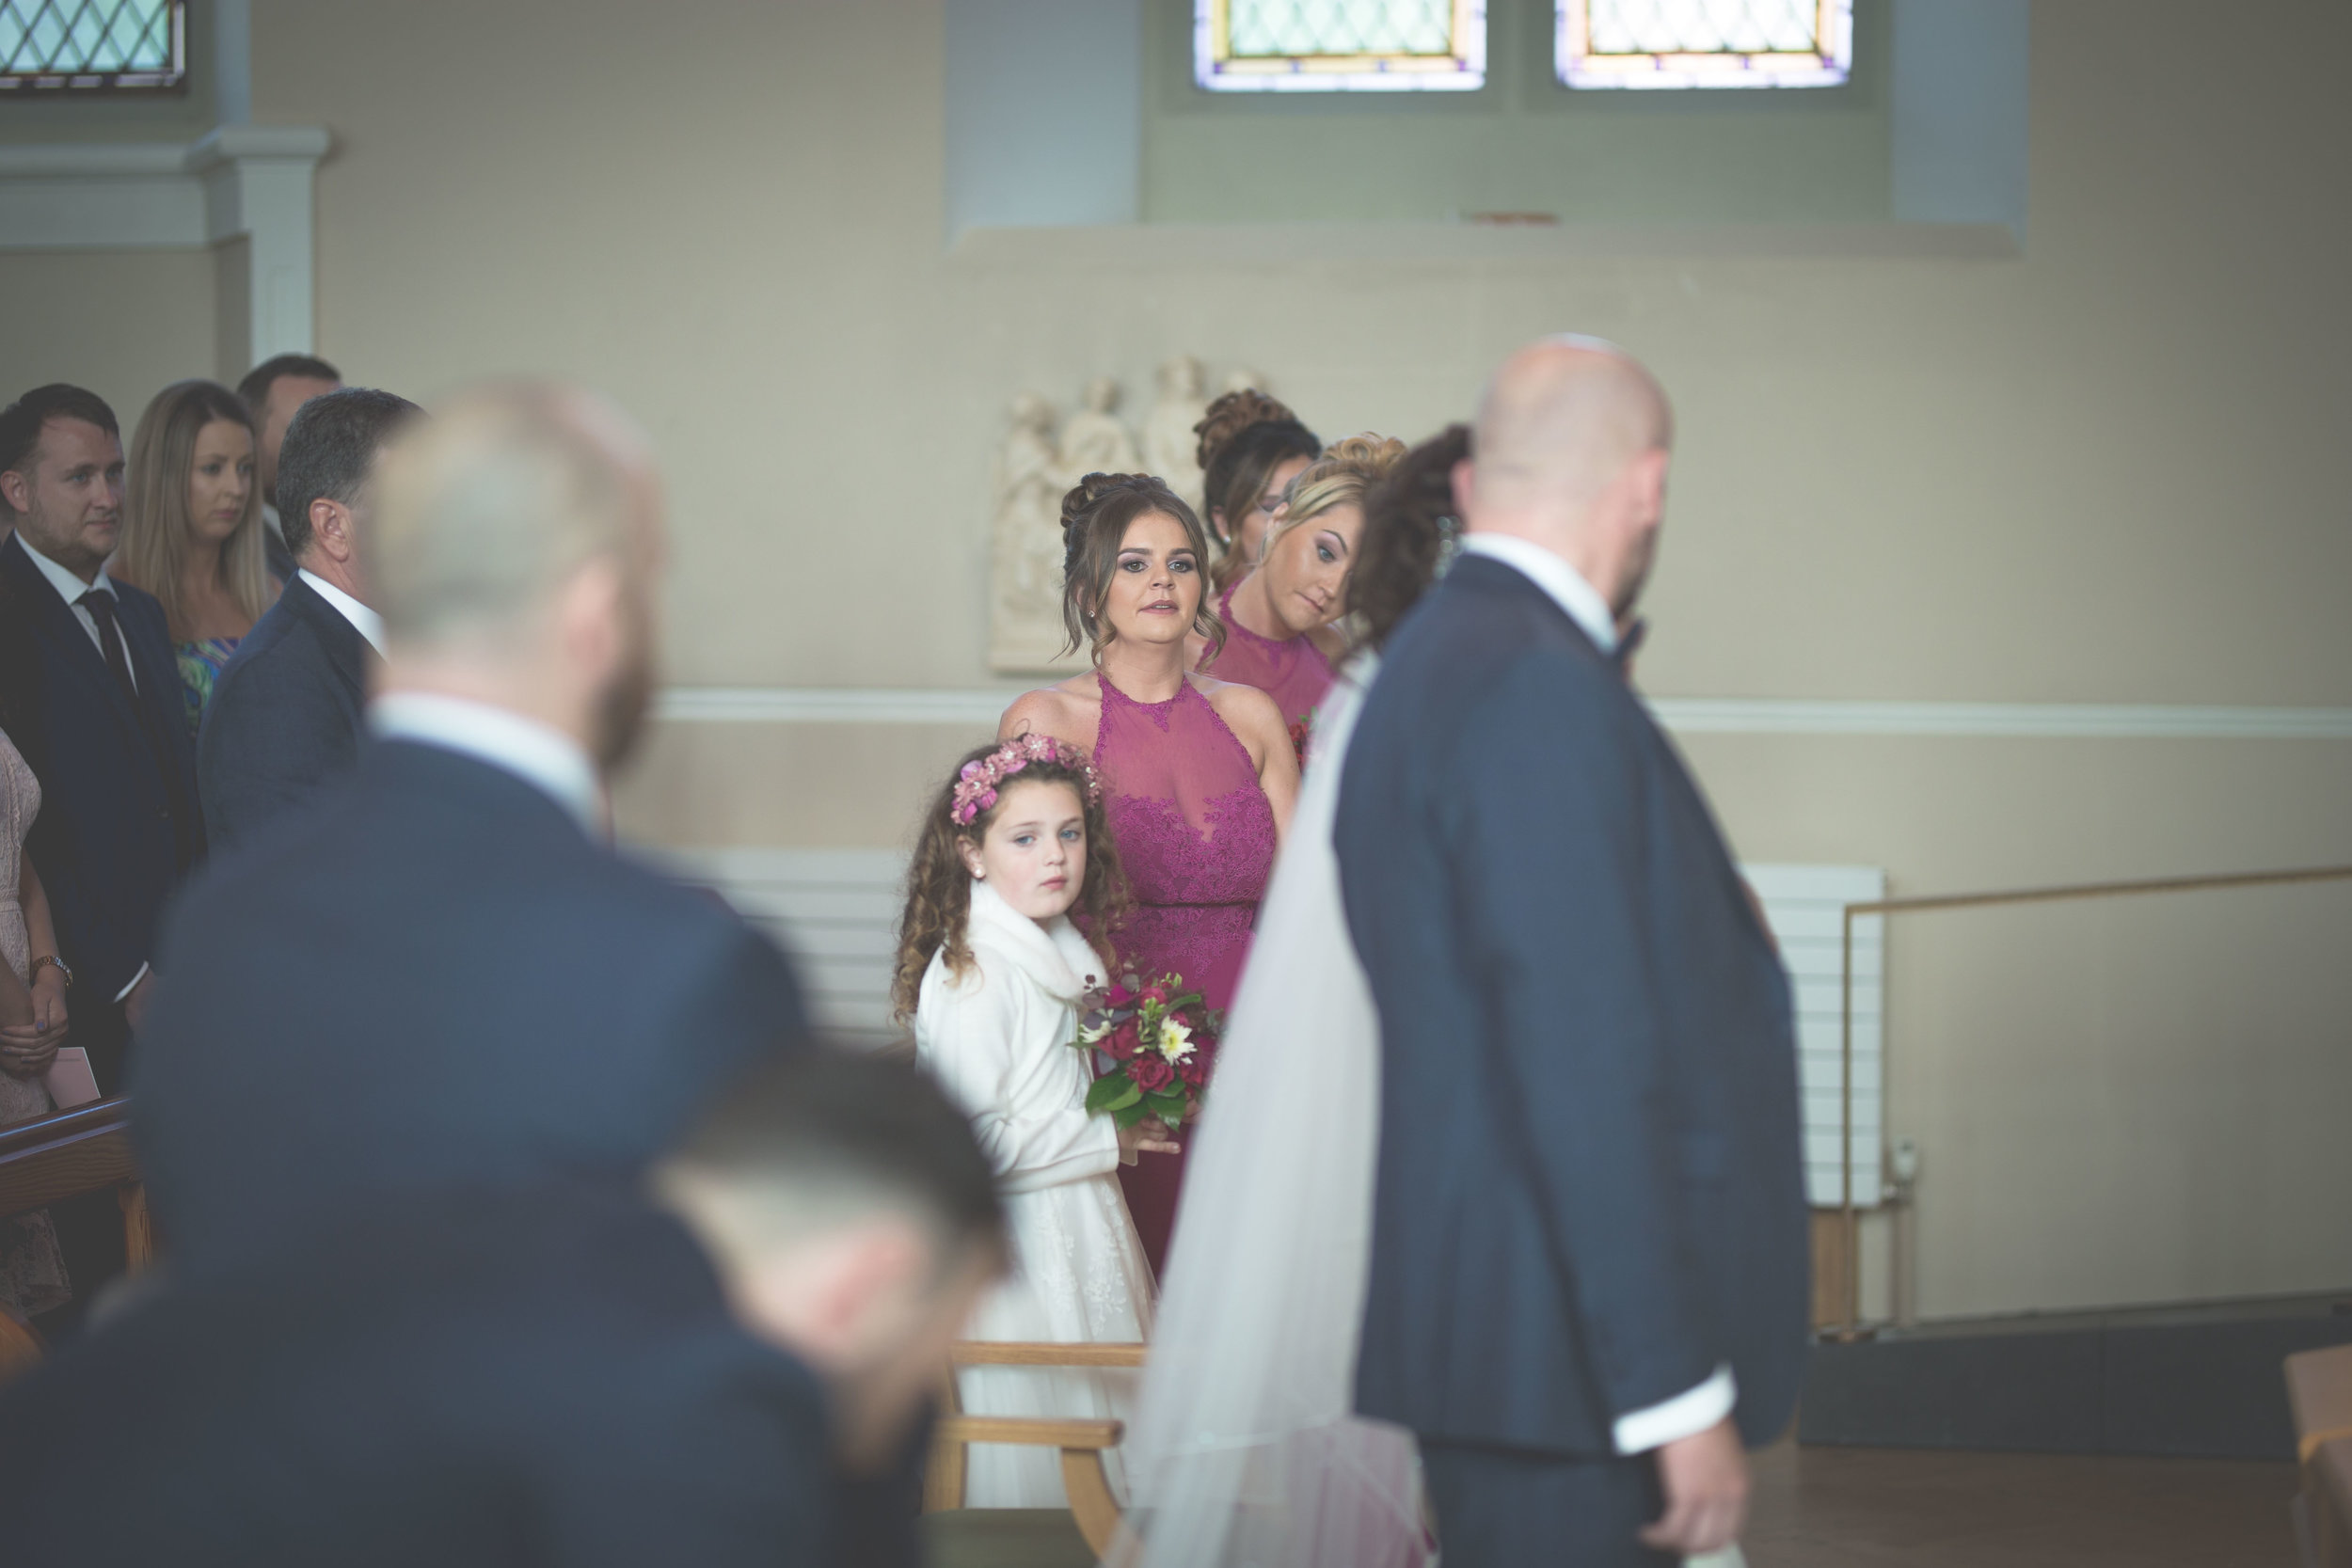 Aisling & Andy - Ceremony-28.jpg